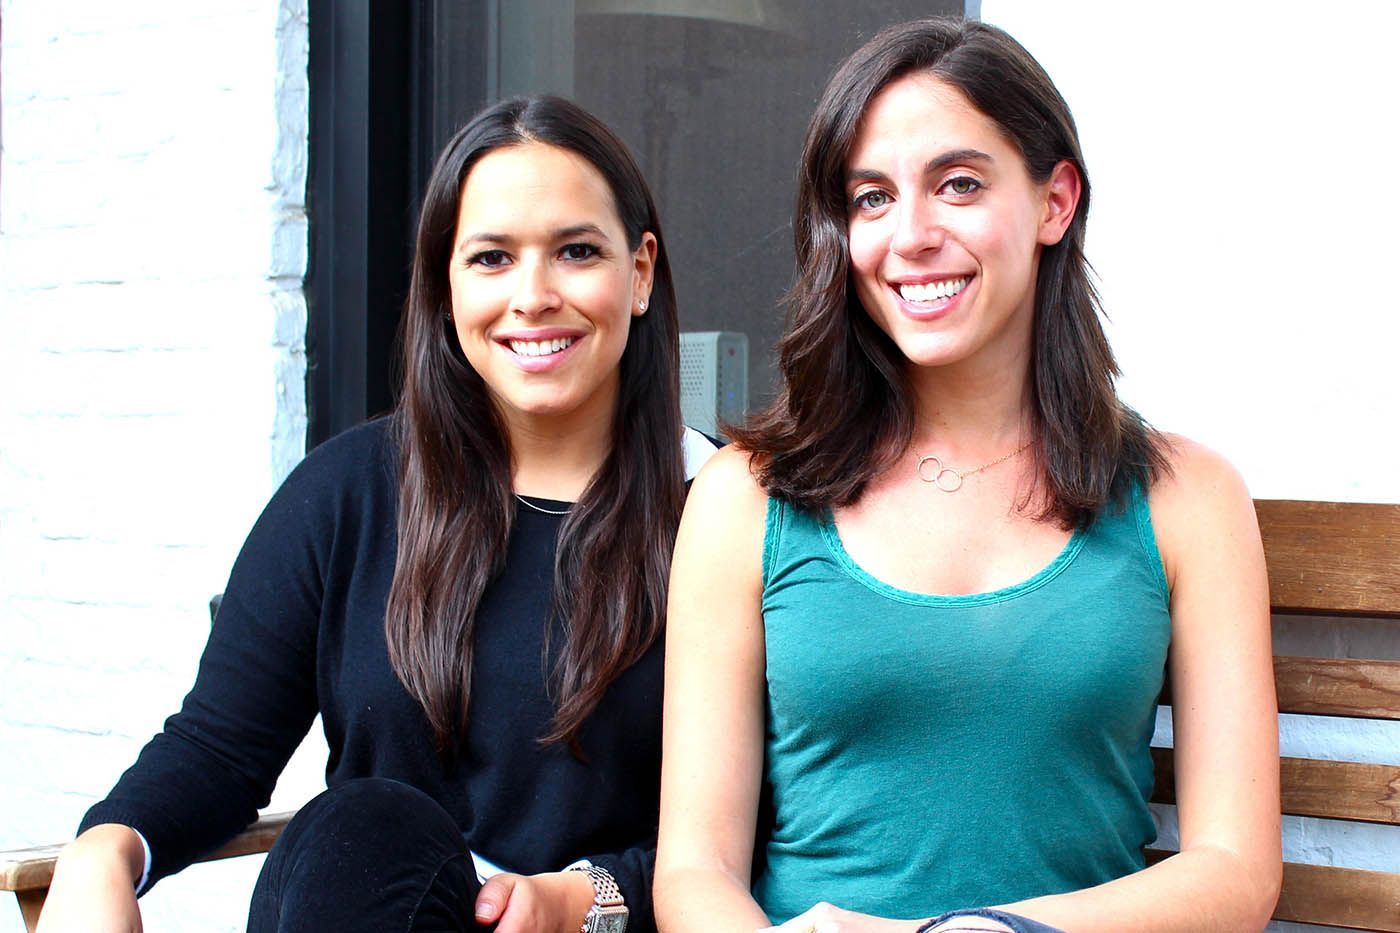 Stylisted meets your on-demand beauty needs. Hear how the founders built this tech company from the ground up.